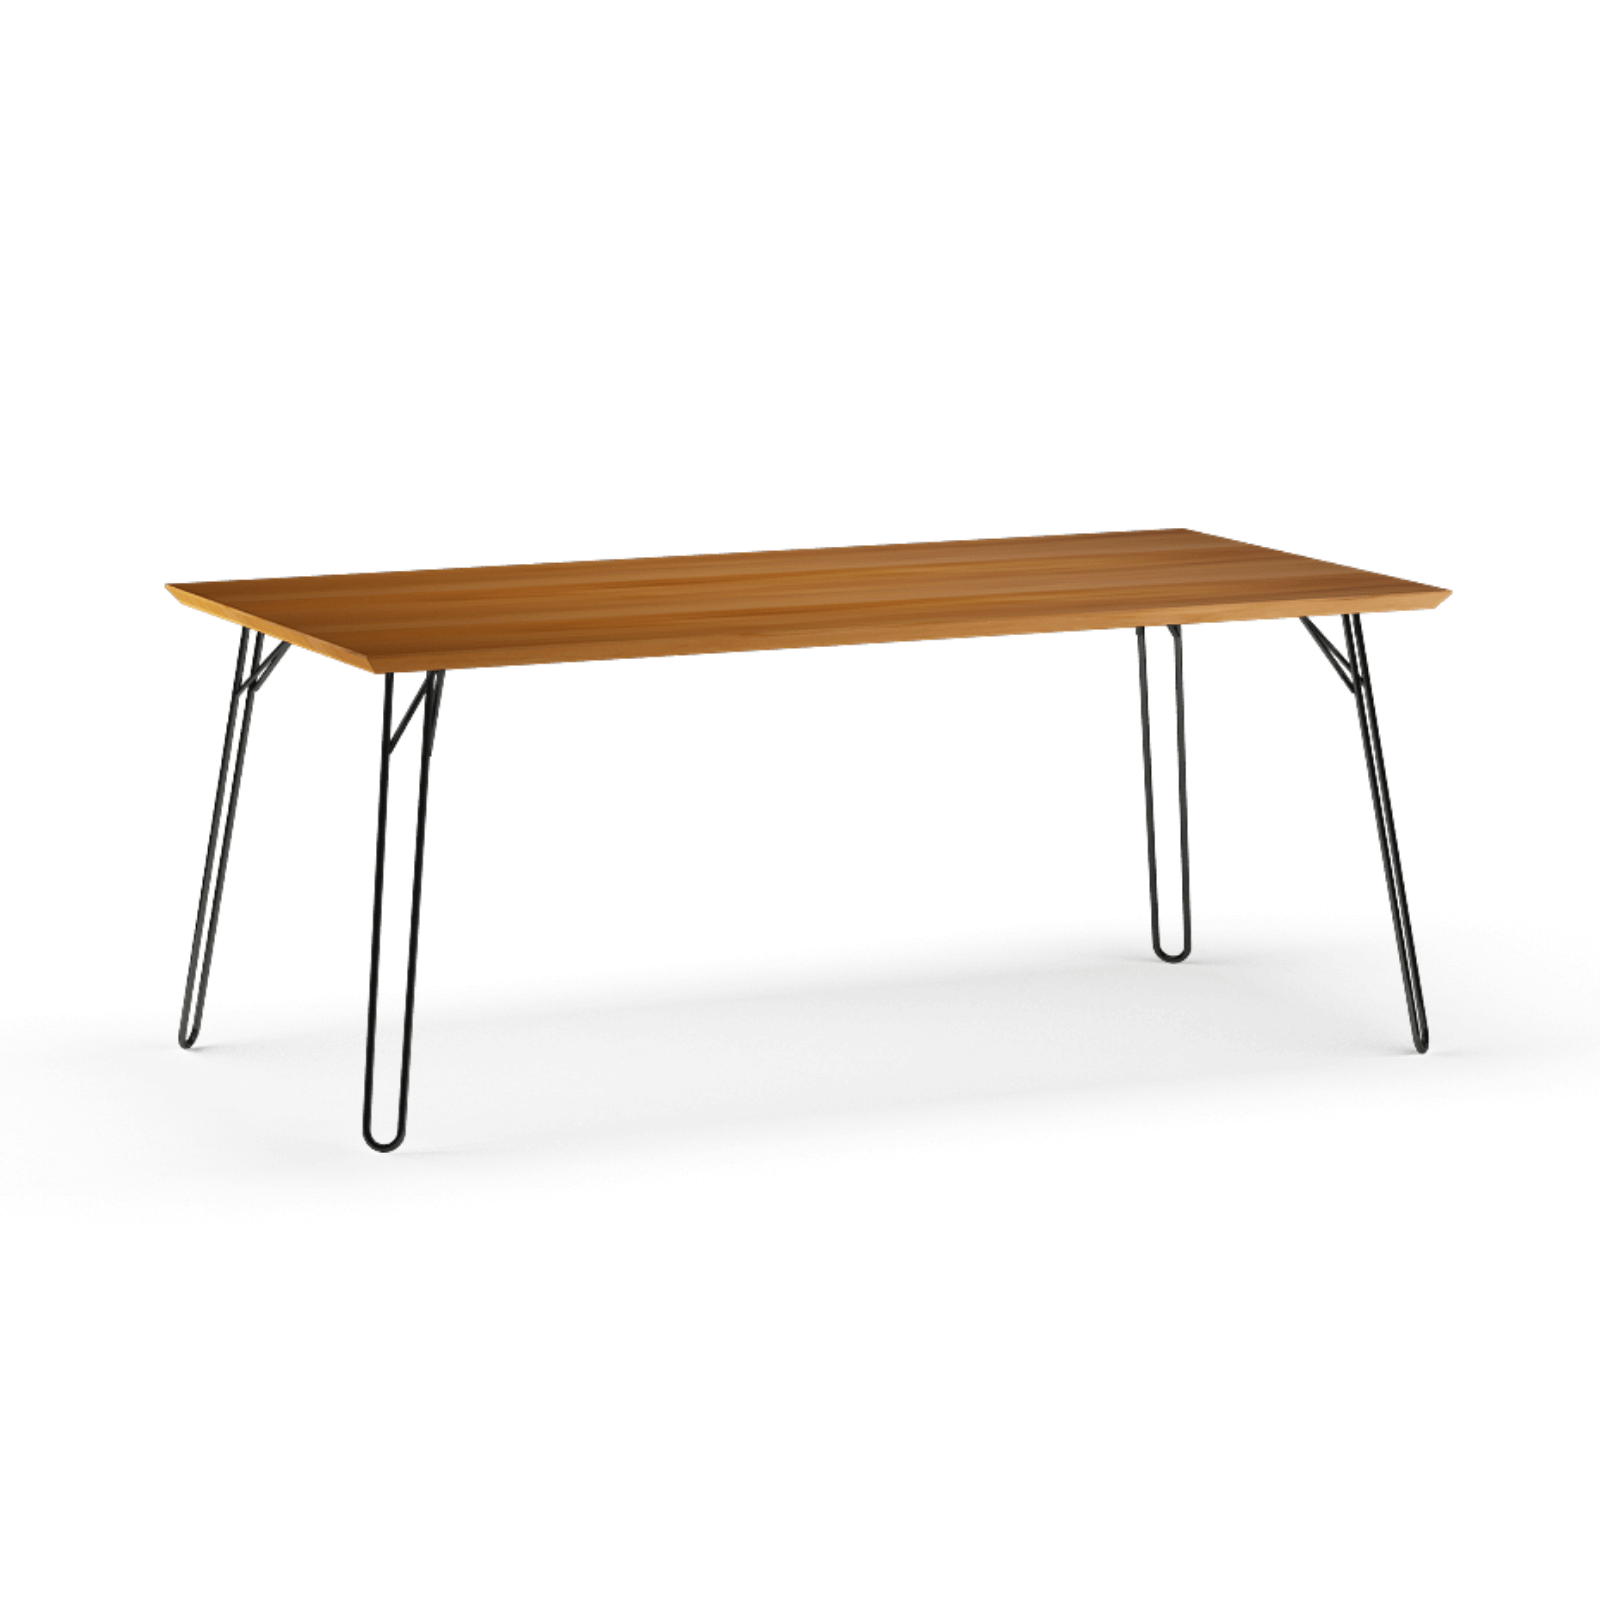 Two Design Lovers Reddie furniture willy dining table 180cm